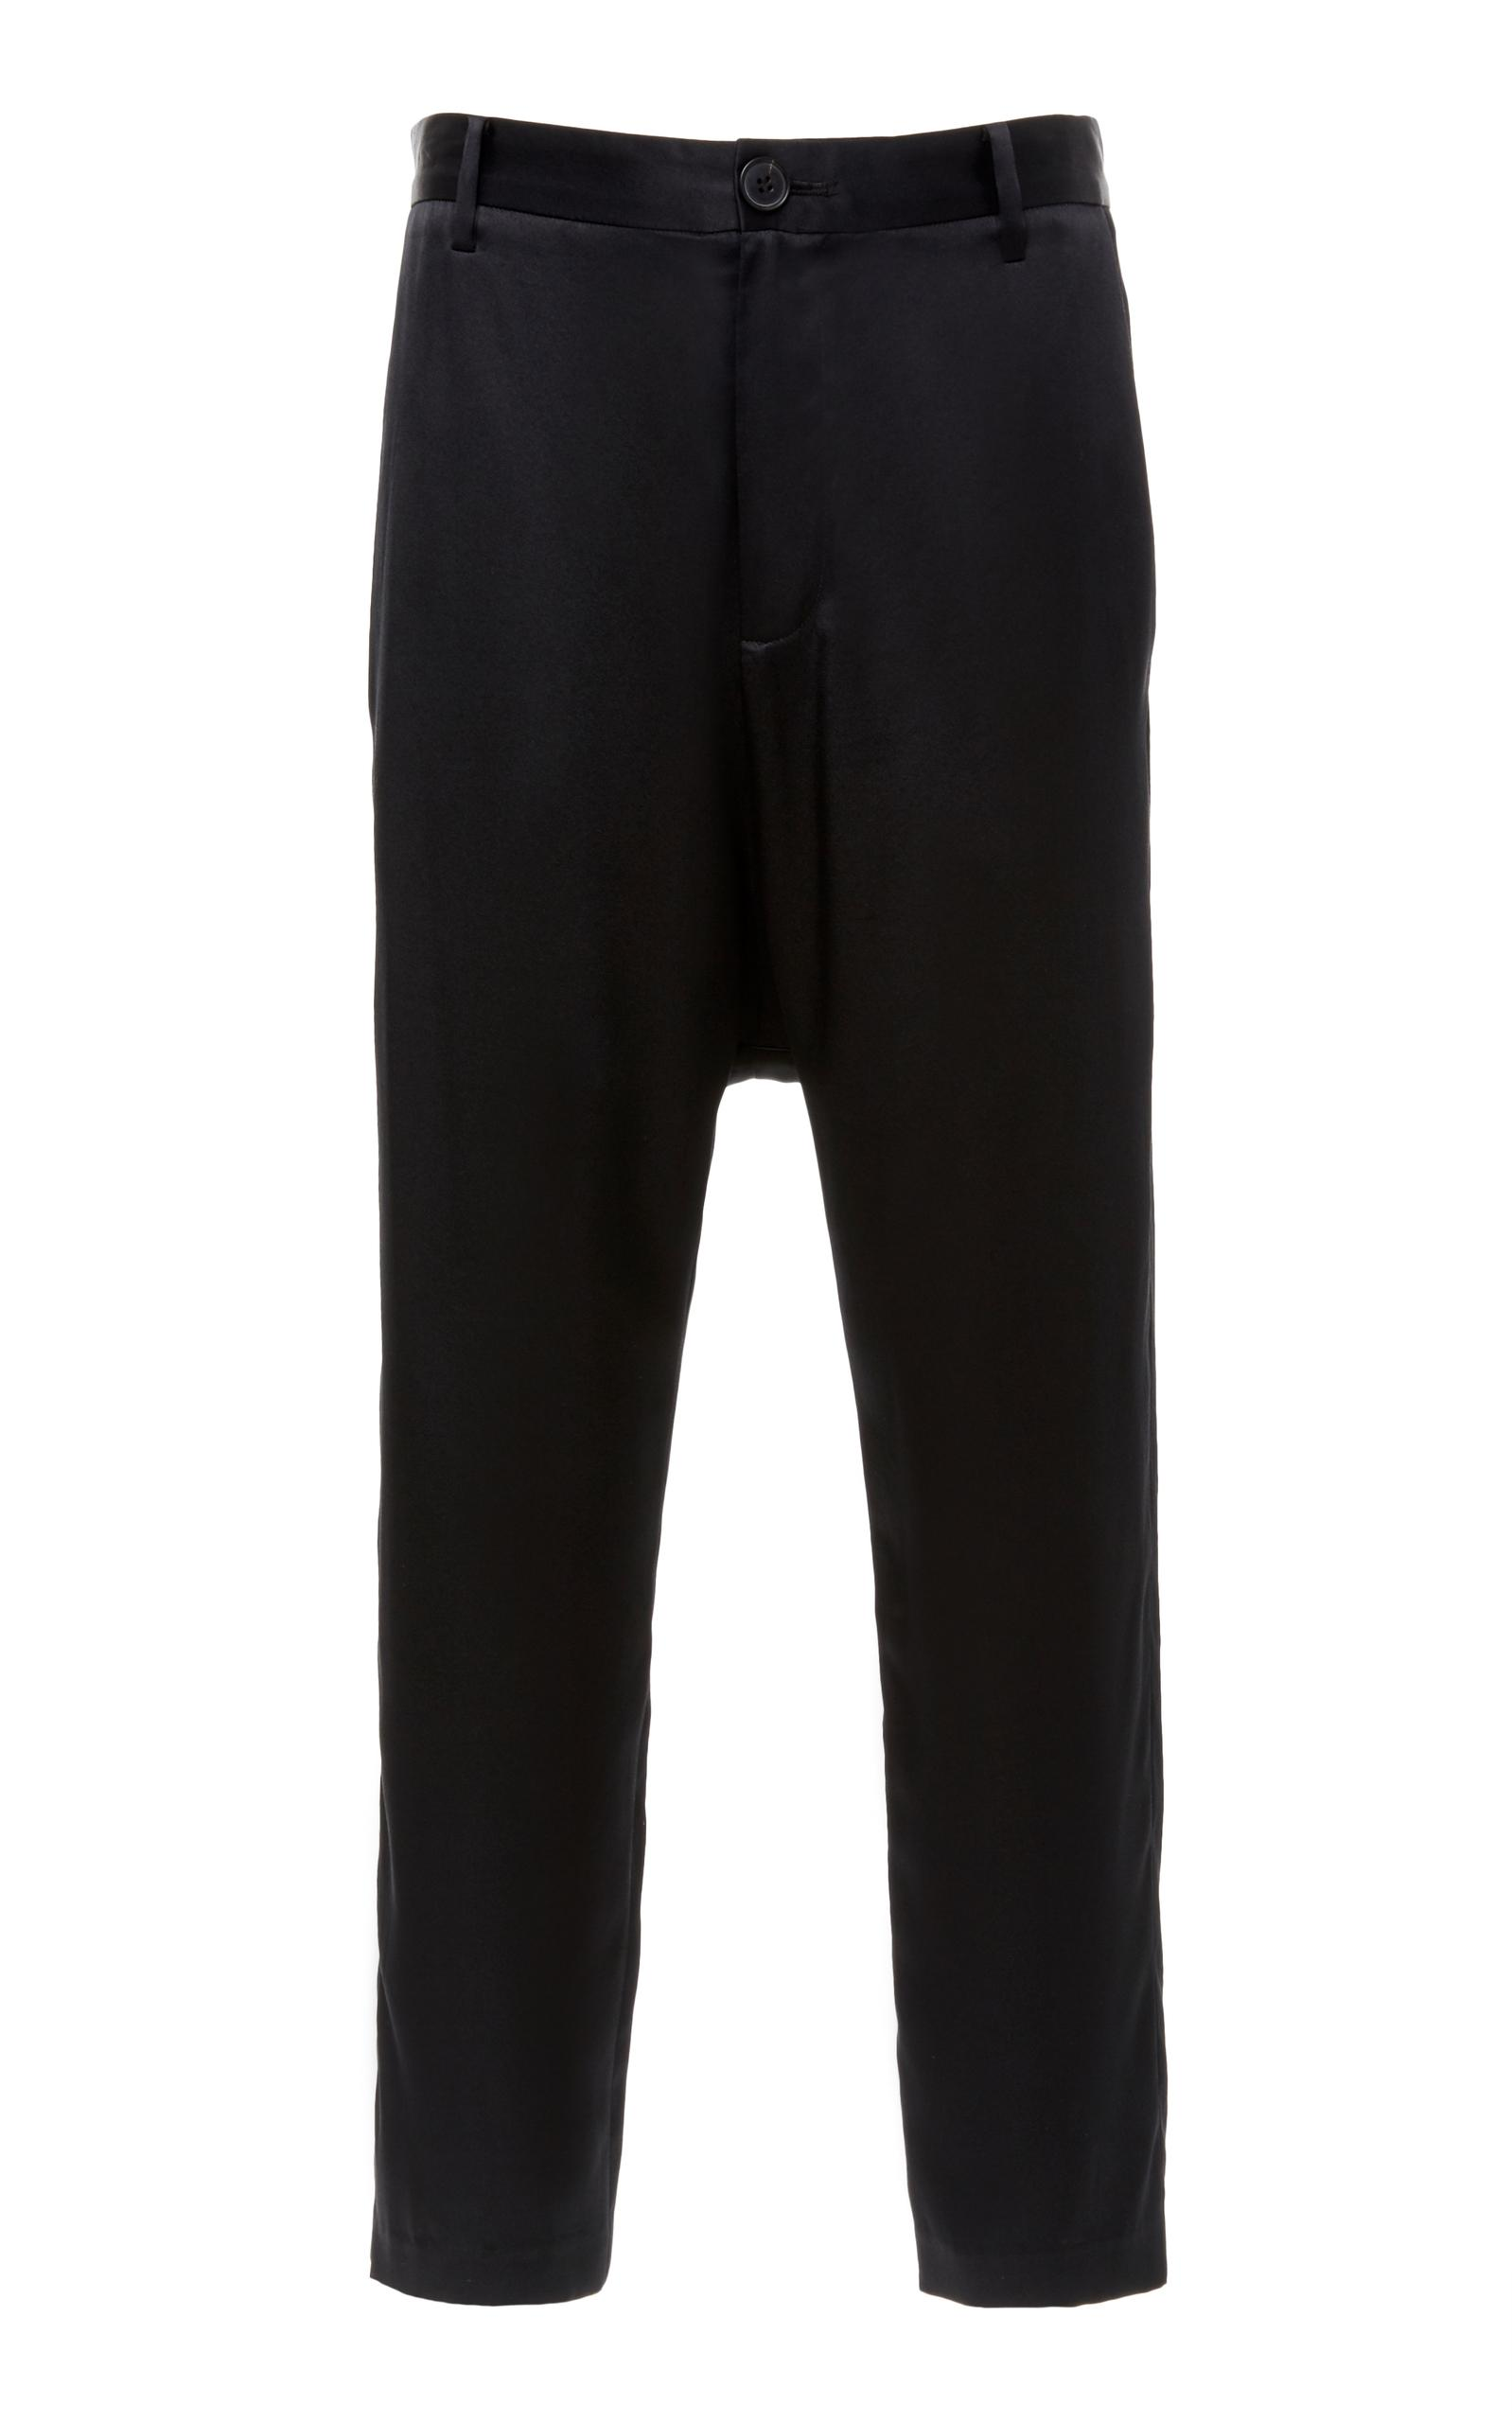 Nili Lotan Paris Silk Drop-Rise Crop Trousers - Black